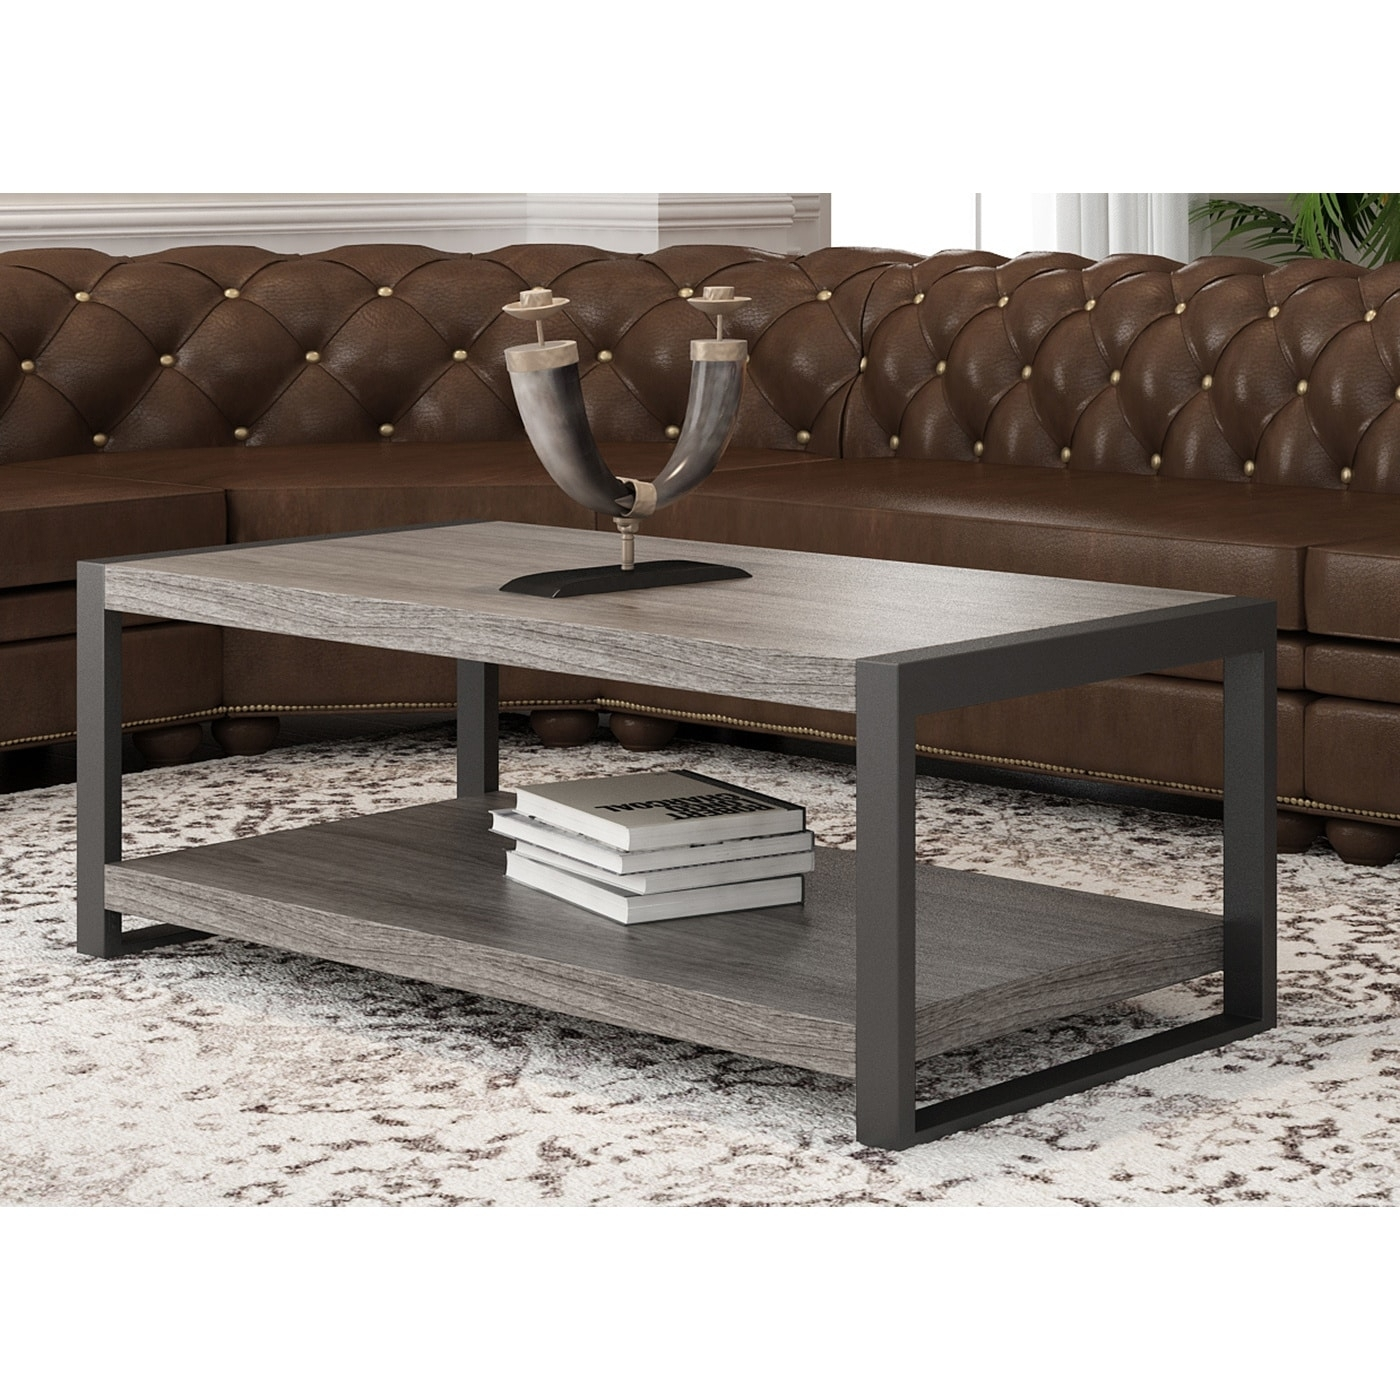 "Shop Angelo:home 48-Inch Coffee Table - On Sale - Free Shipping pertaining to Chevron 48"" Coffee Tables (Image 7 of 9)"